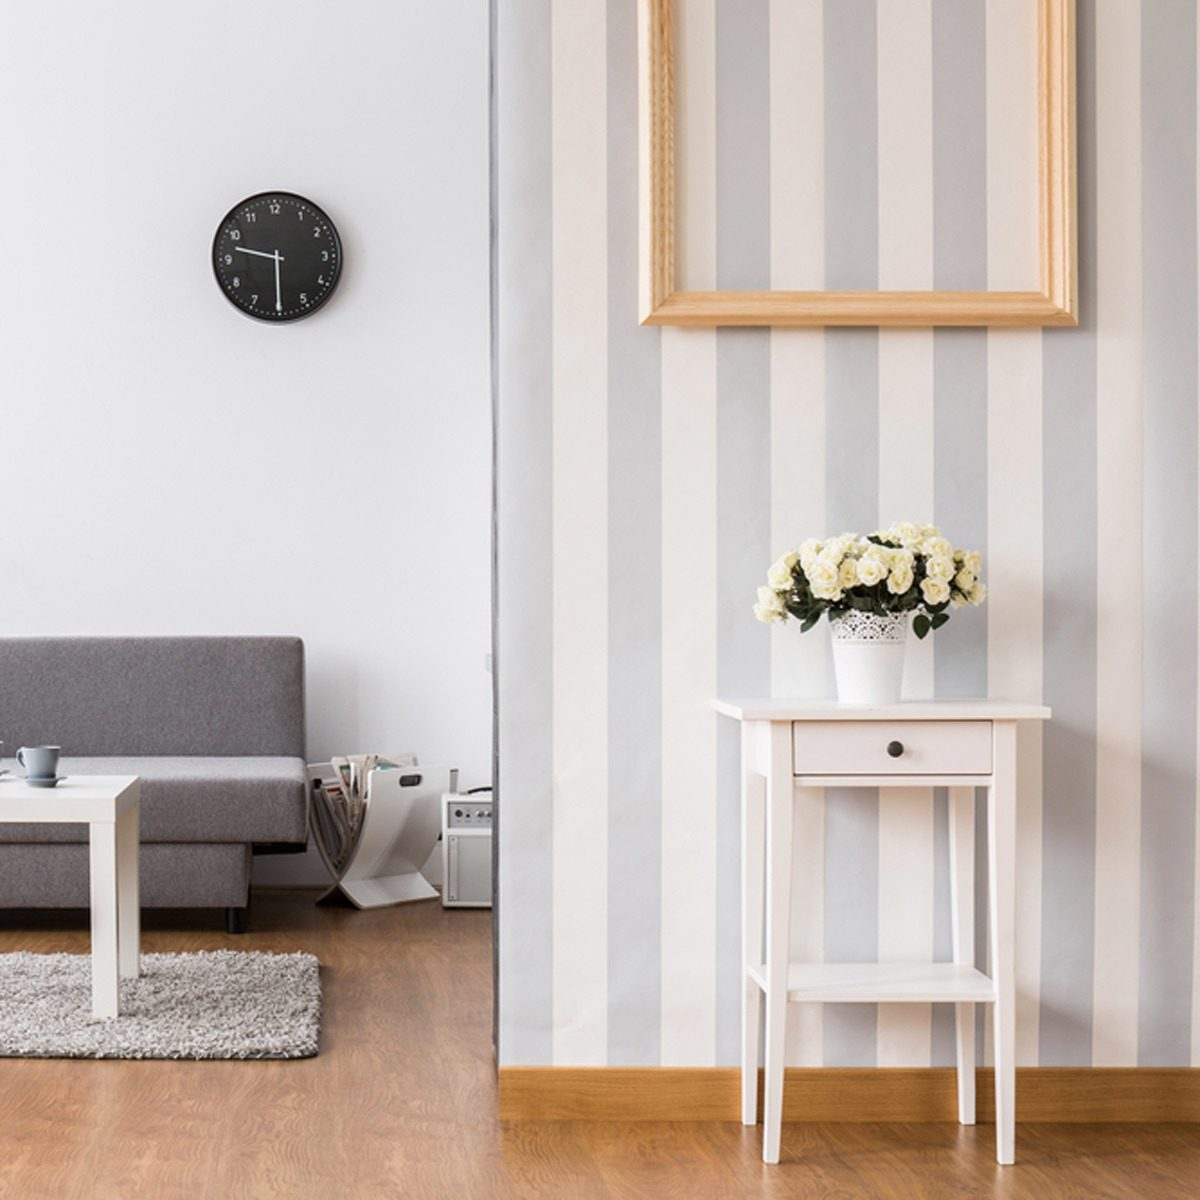 Try Removable Wallpaper to Personalize your Apartment